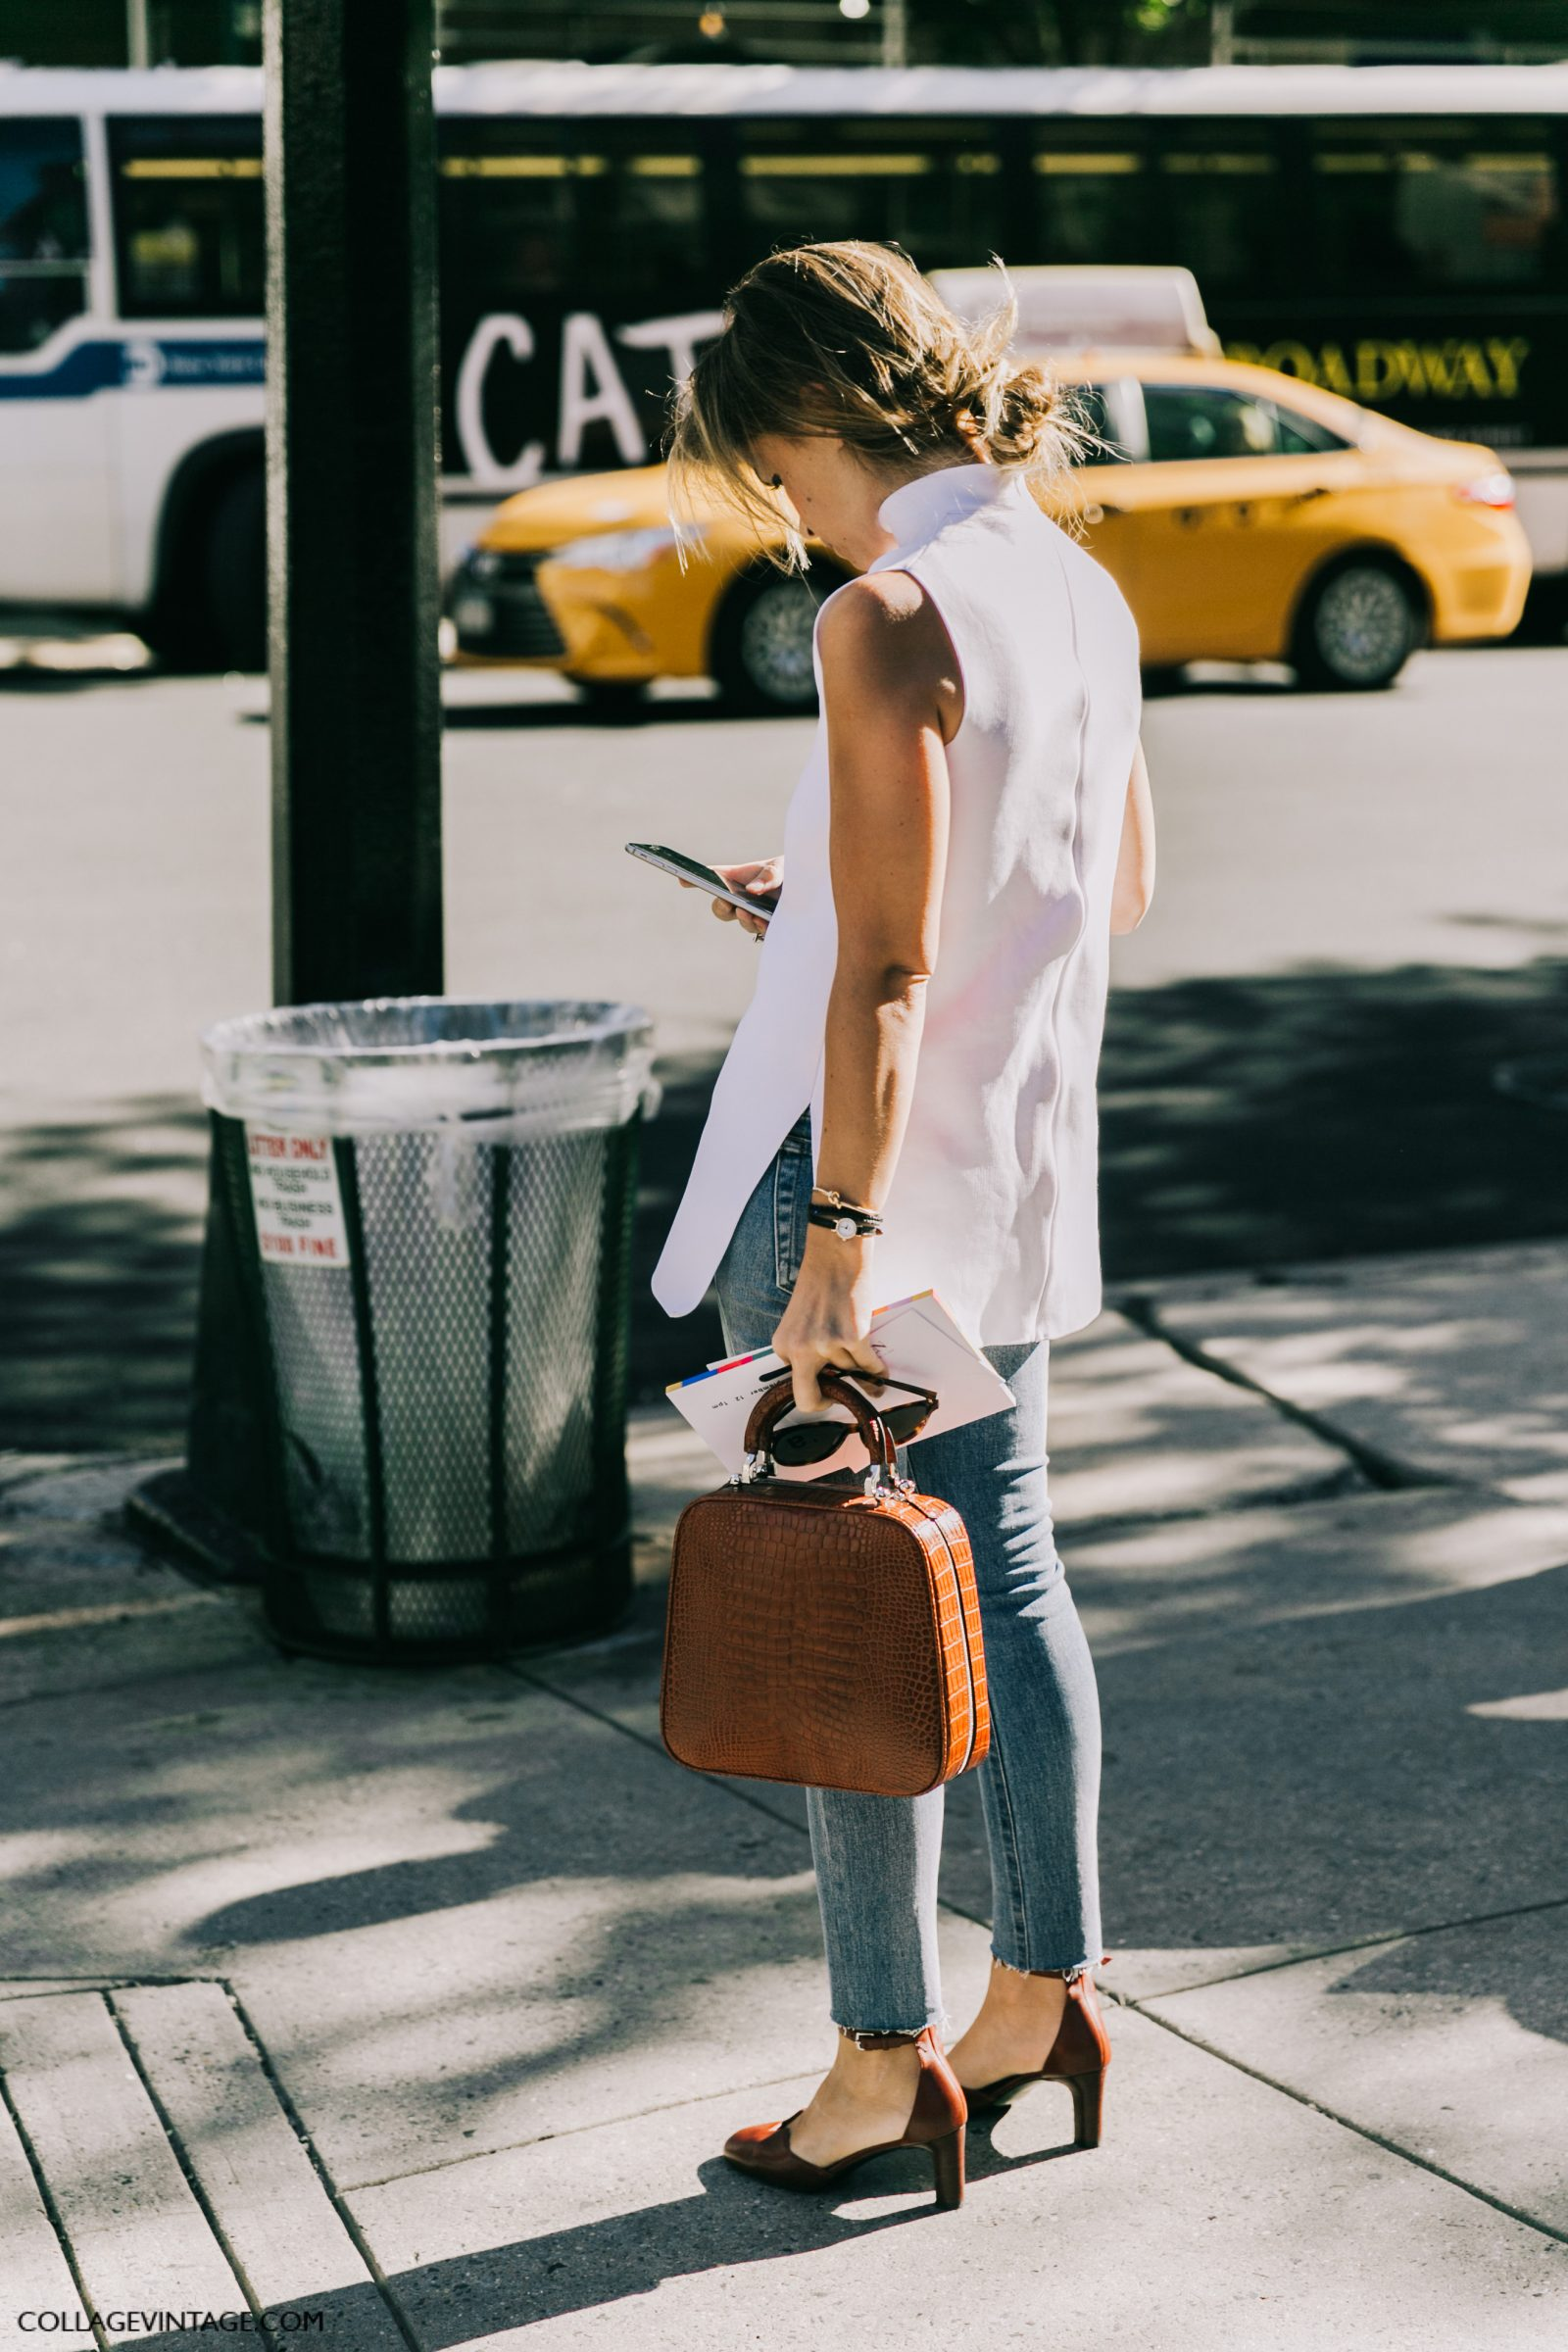 nyfw-new_york_fashion_week_ss17-street_style-outfits-collage_vintage-vintage-phillip_lim-the-row-proenza_schouler-rossie_aussolin-40